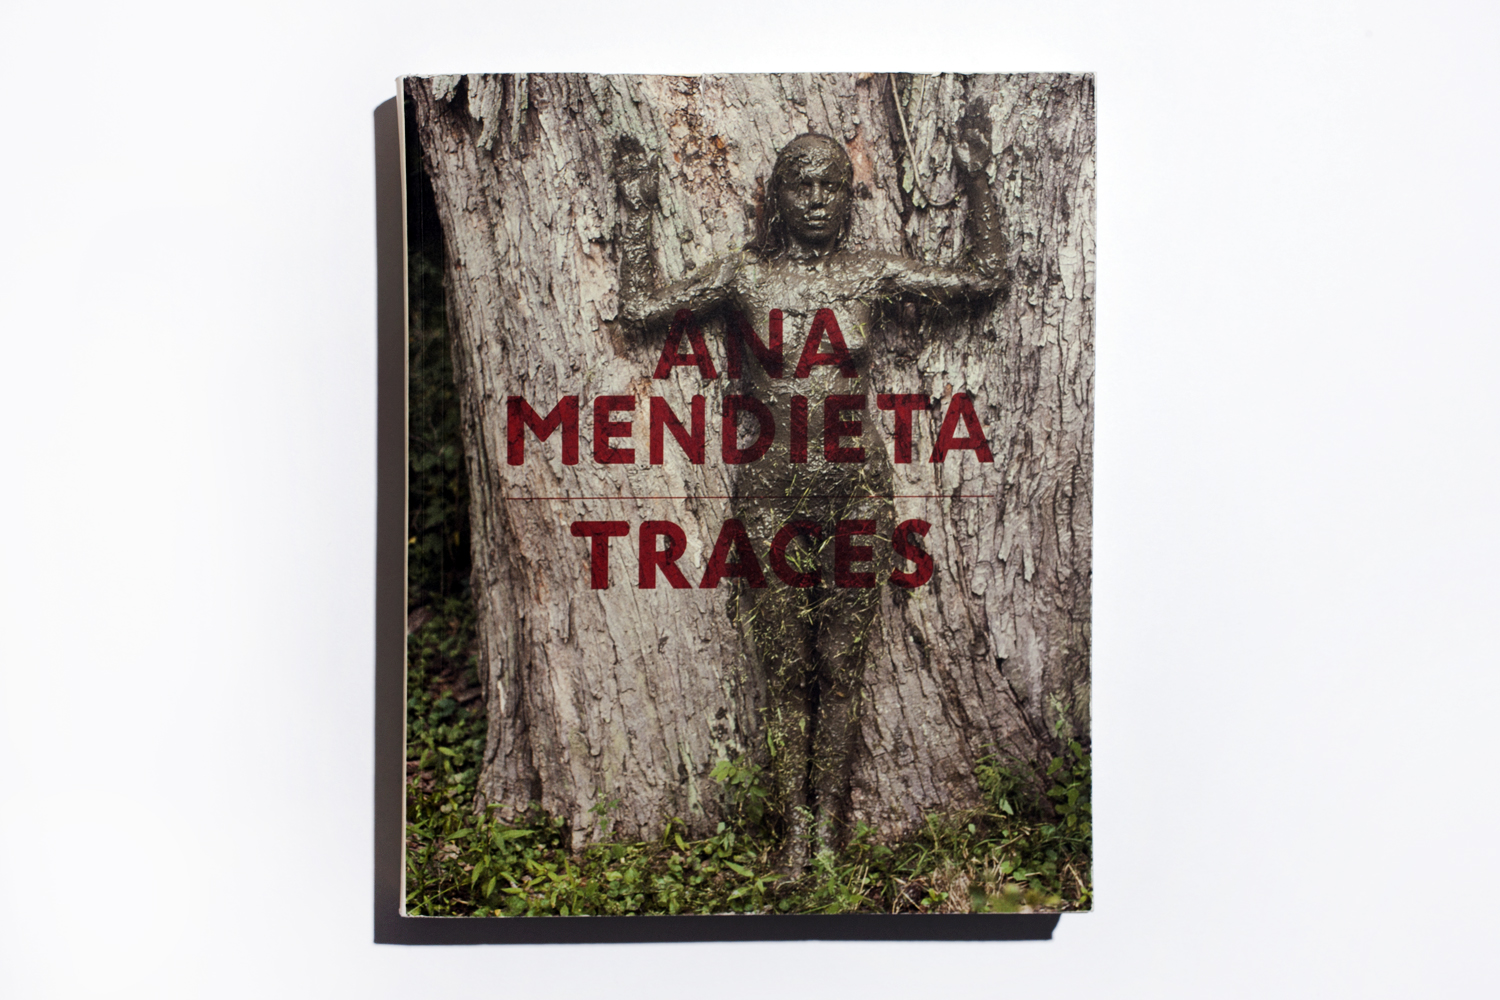 Traces by Ana Mendieta, published by Hayward Publishing, selected by Anne-Celine Jaeger, author